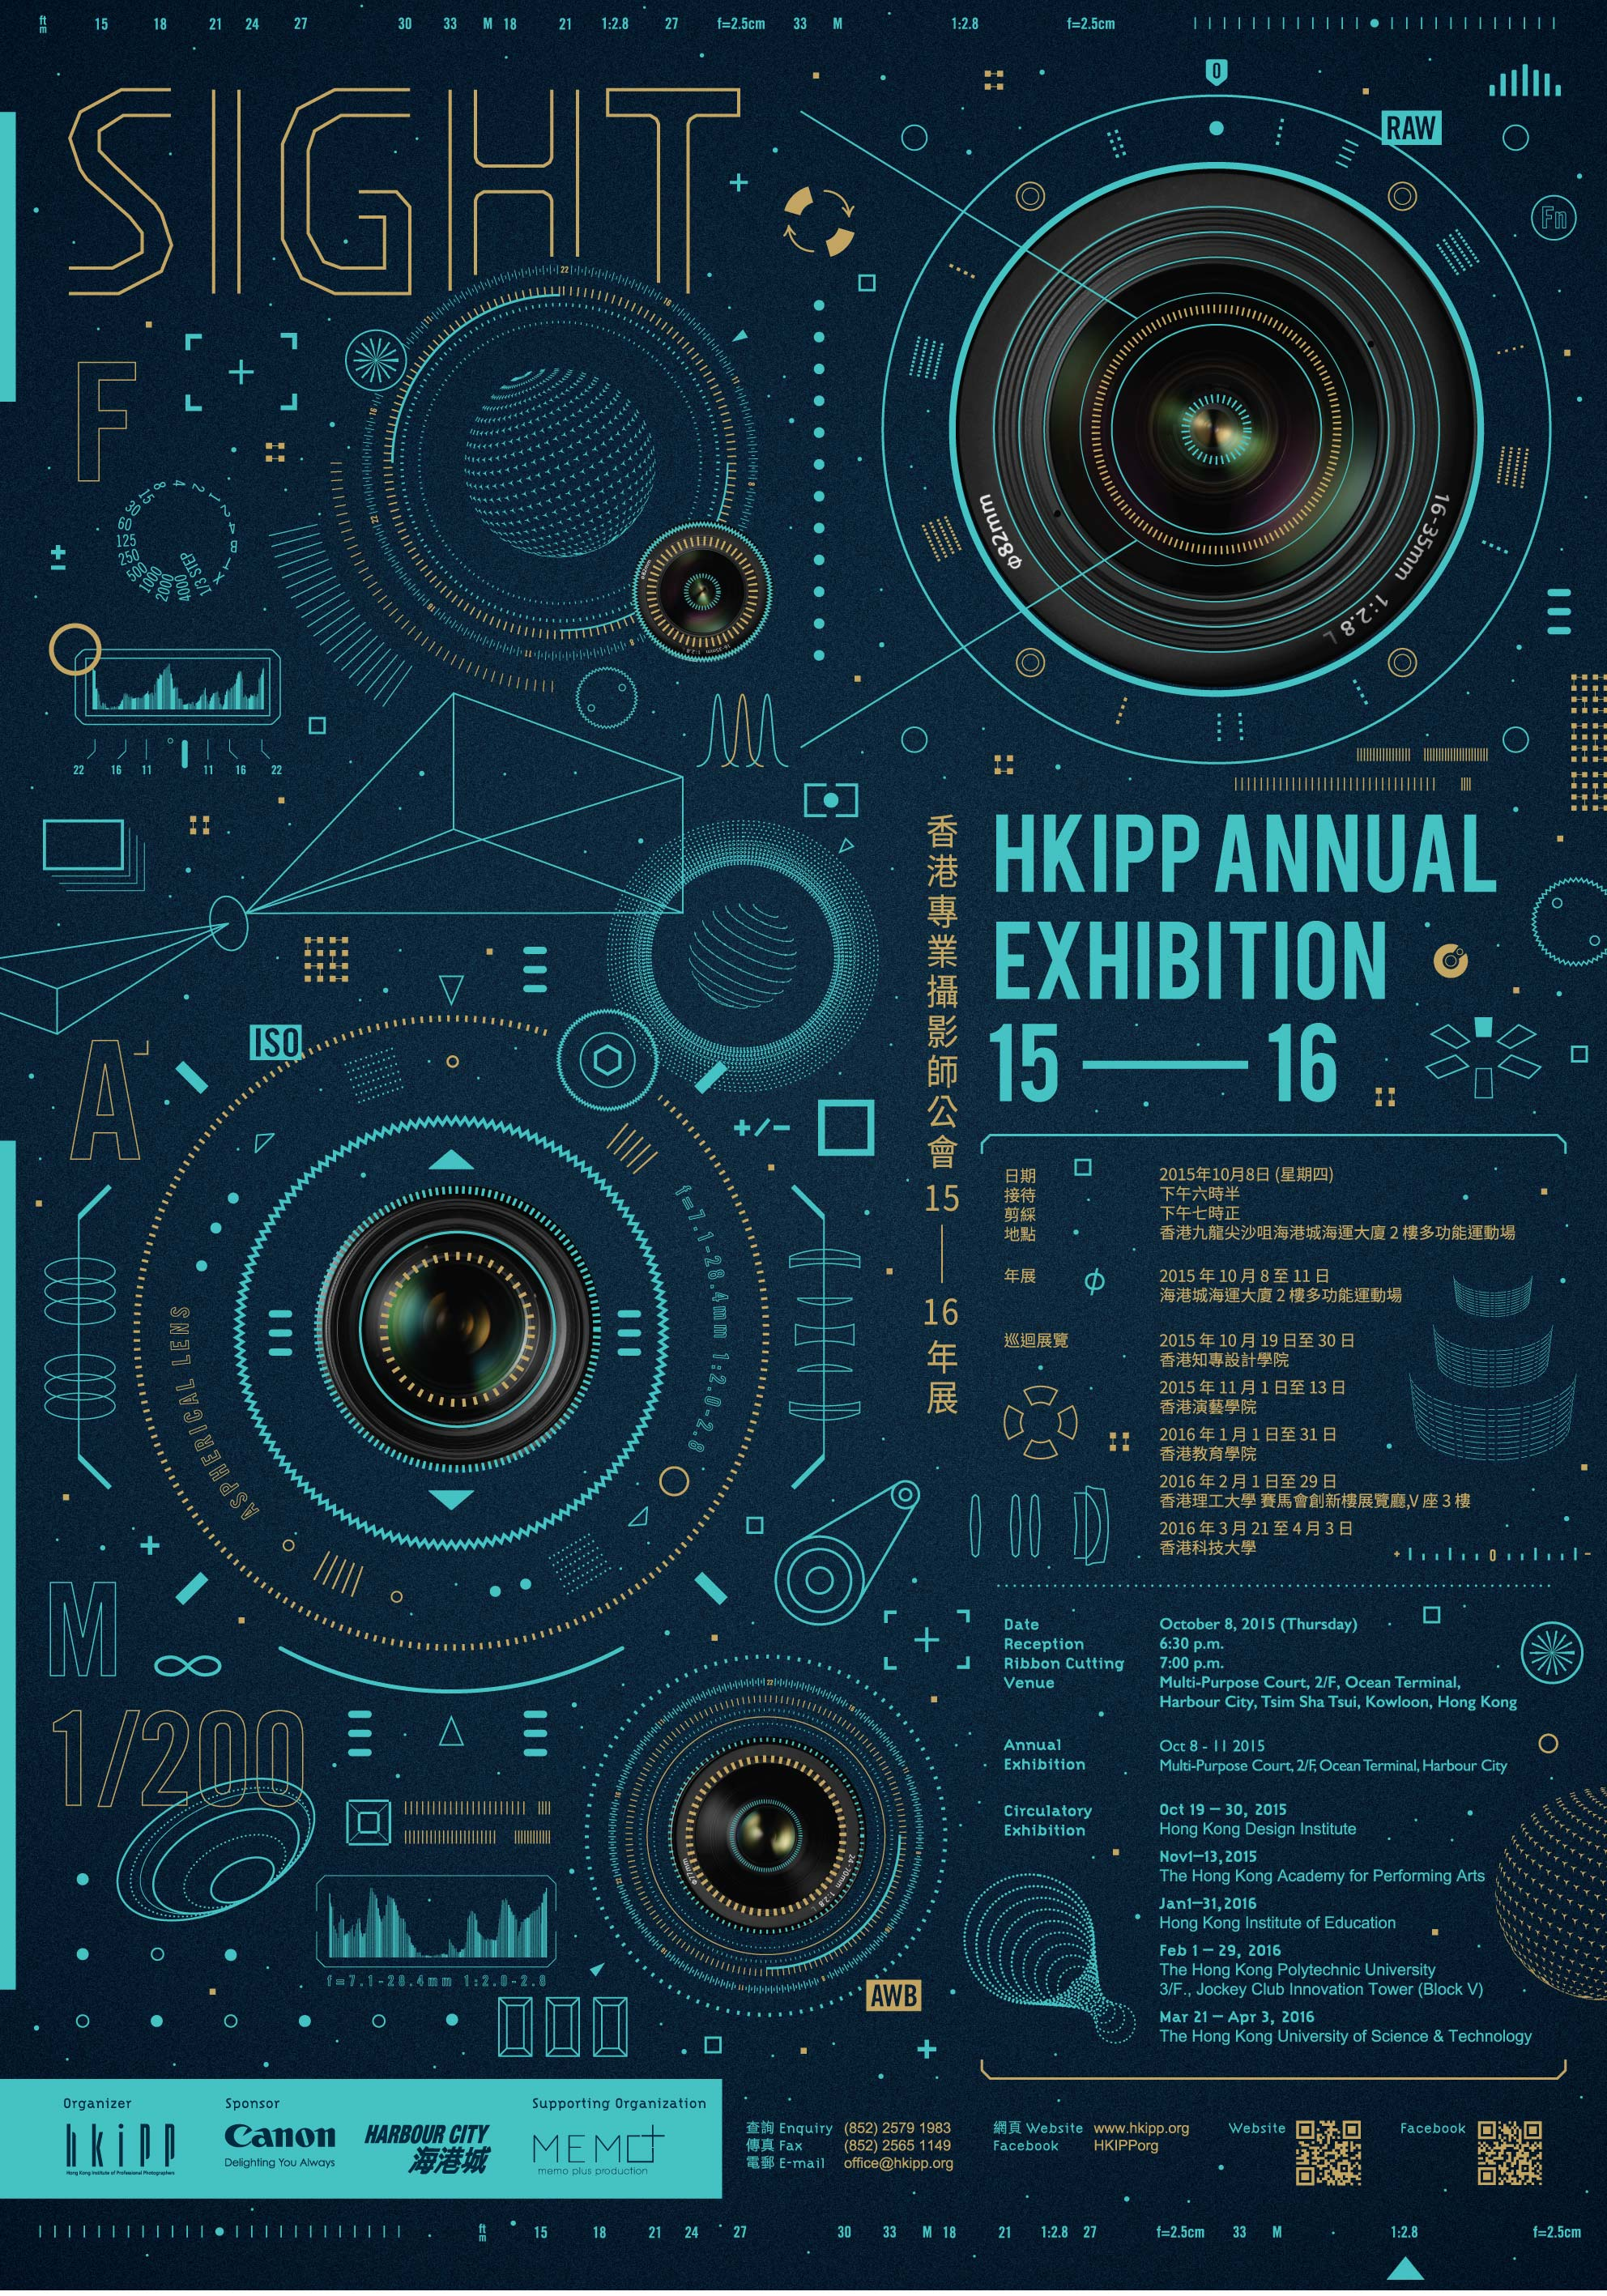 HP001_HKIPP-annual-exhibition2015_Poster_3